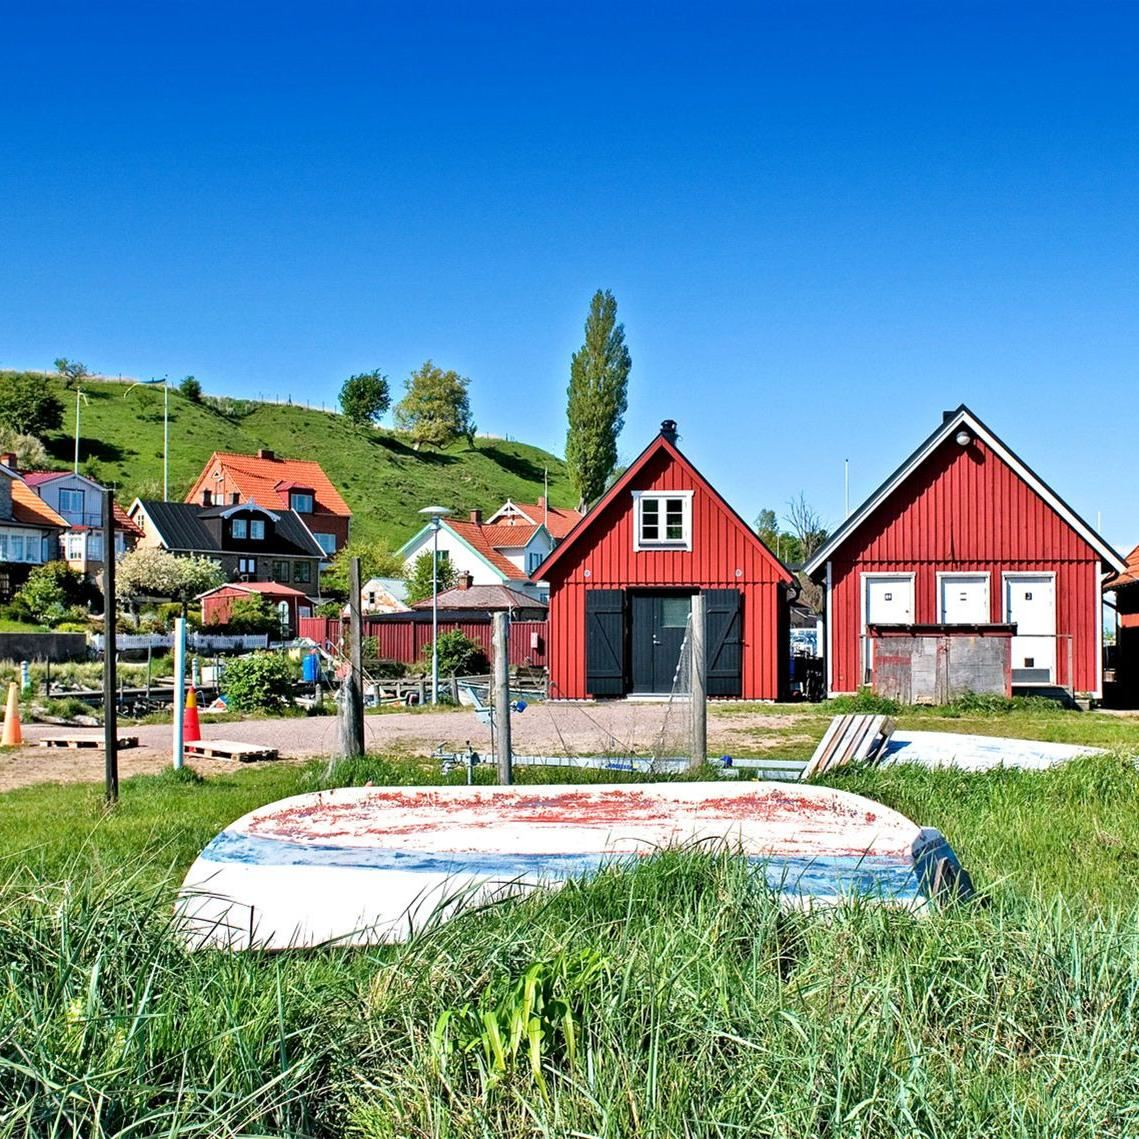 Foto: Rederi AB Ventrafiken, Take a trip to the island of Ven!